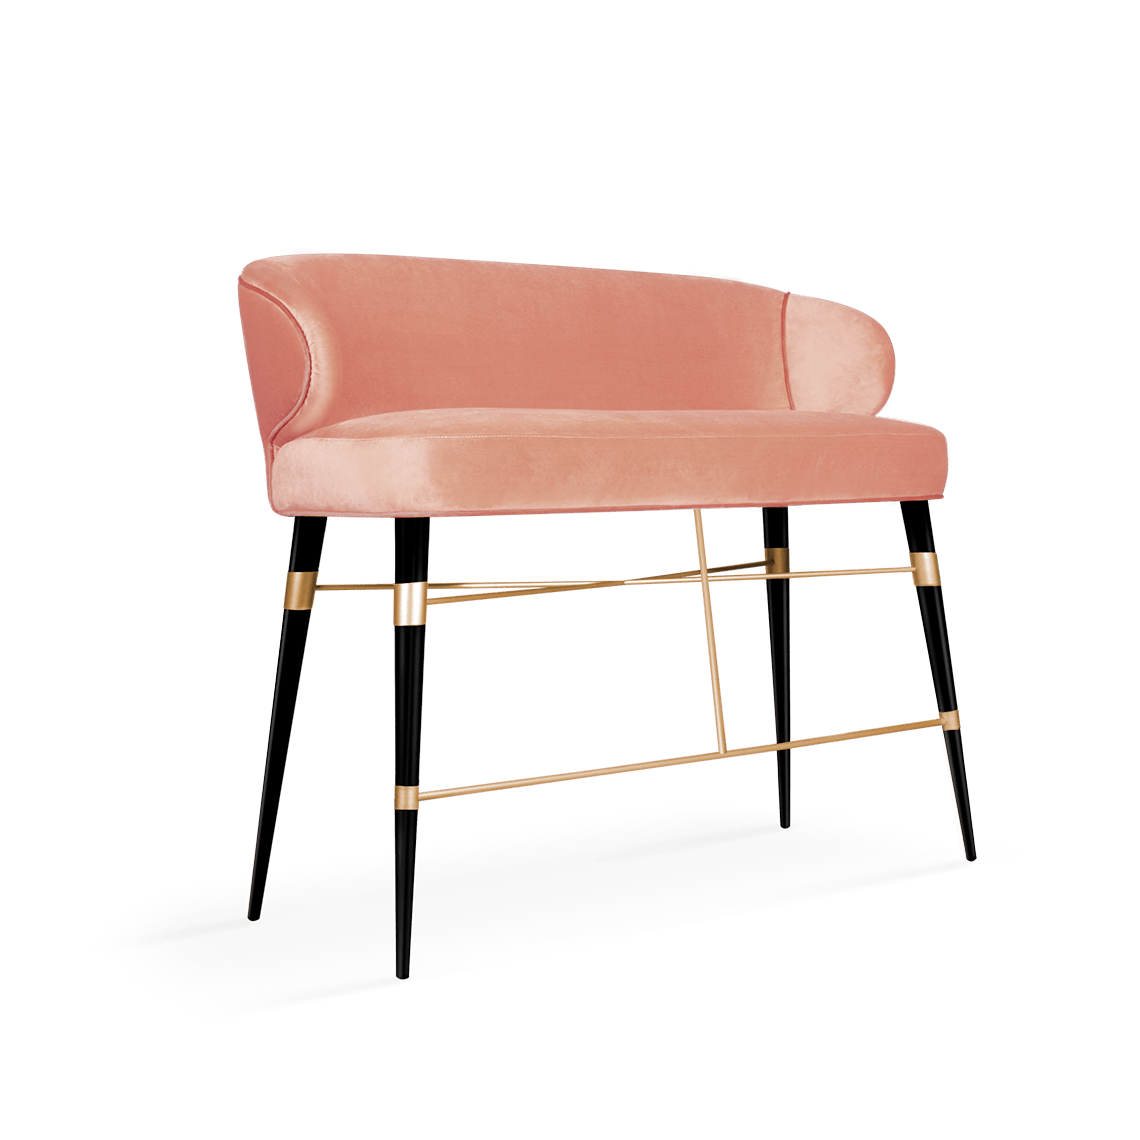 Louis Mid-Century Modern Twin Bar Chair in coral cotton velvet